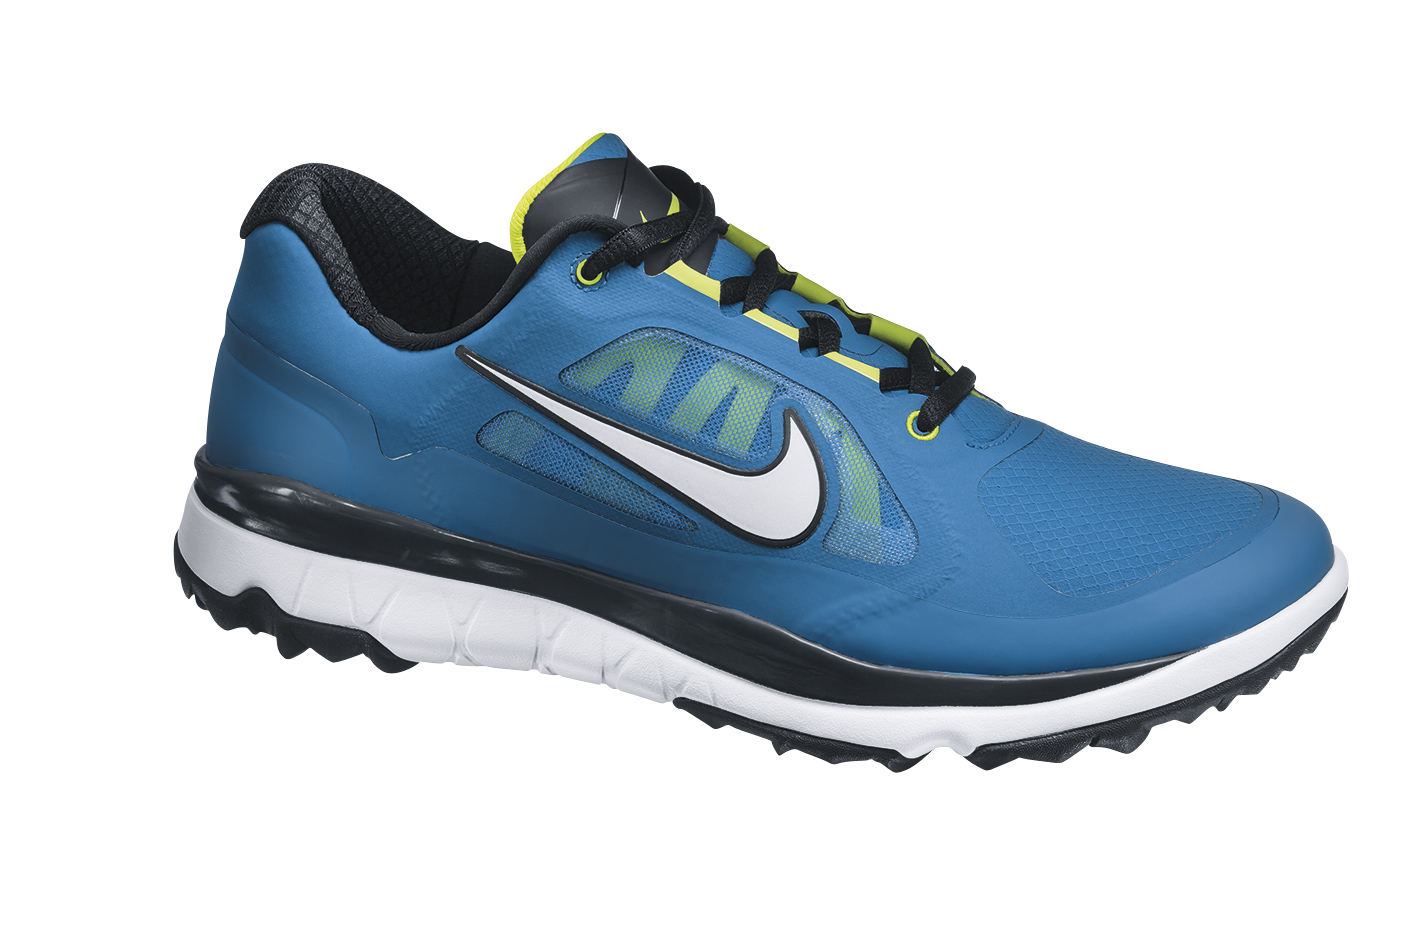 new product 1c7a9 3f6a3 Nike FI Impact spikless golf shoes – GolfWRX